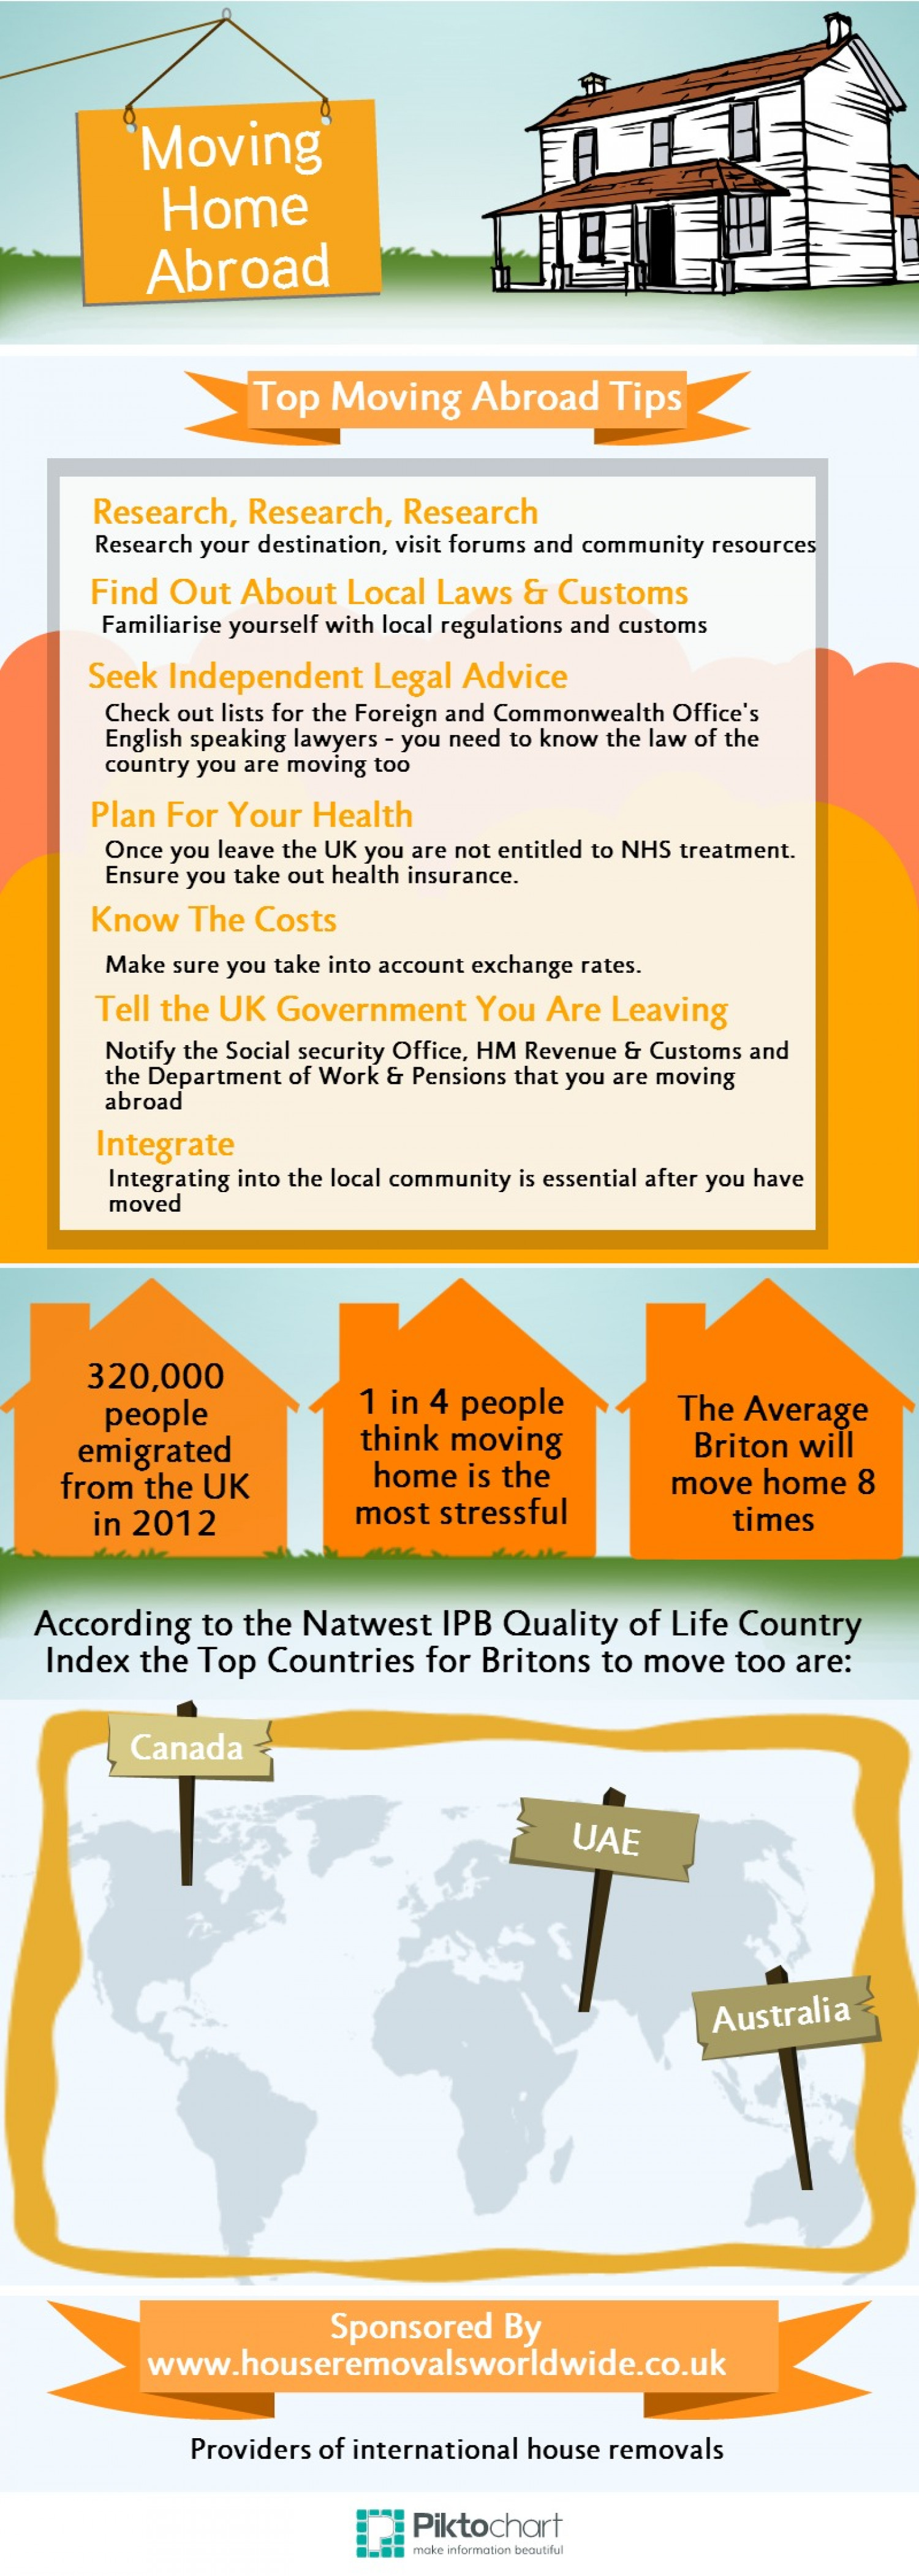 Moving Home Abroad Infographic